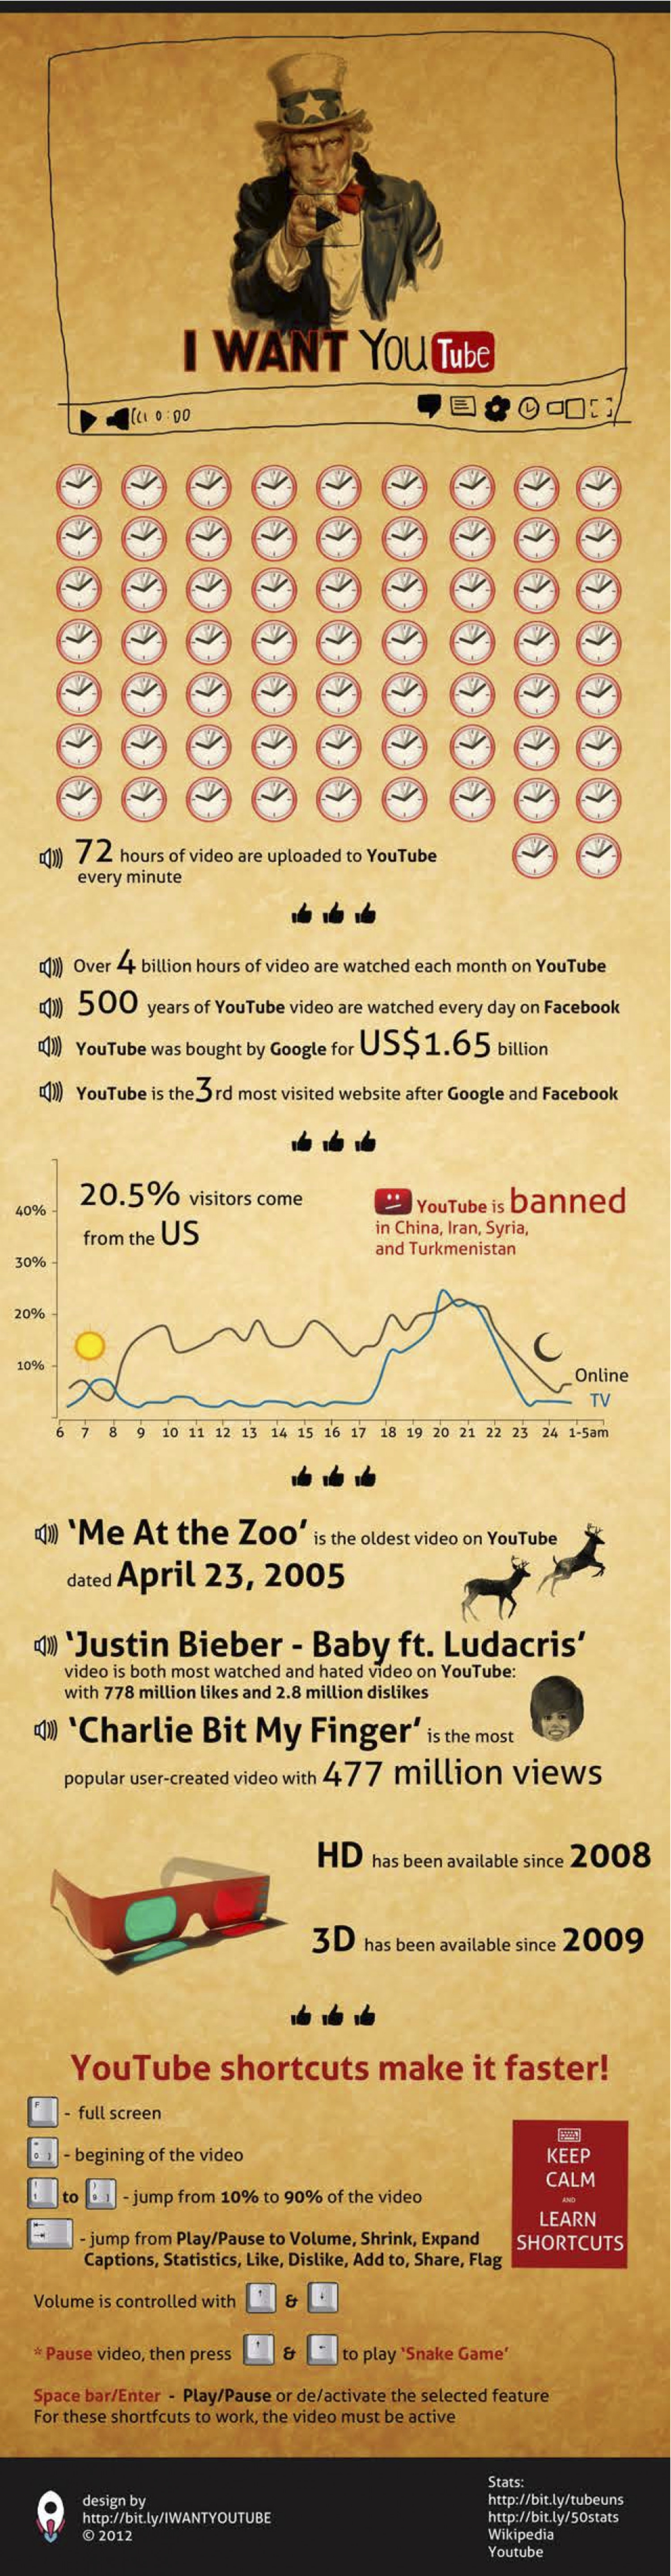 I want YouTube Infographic